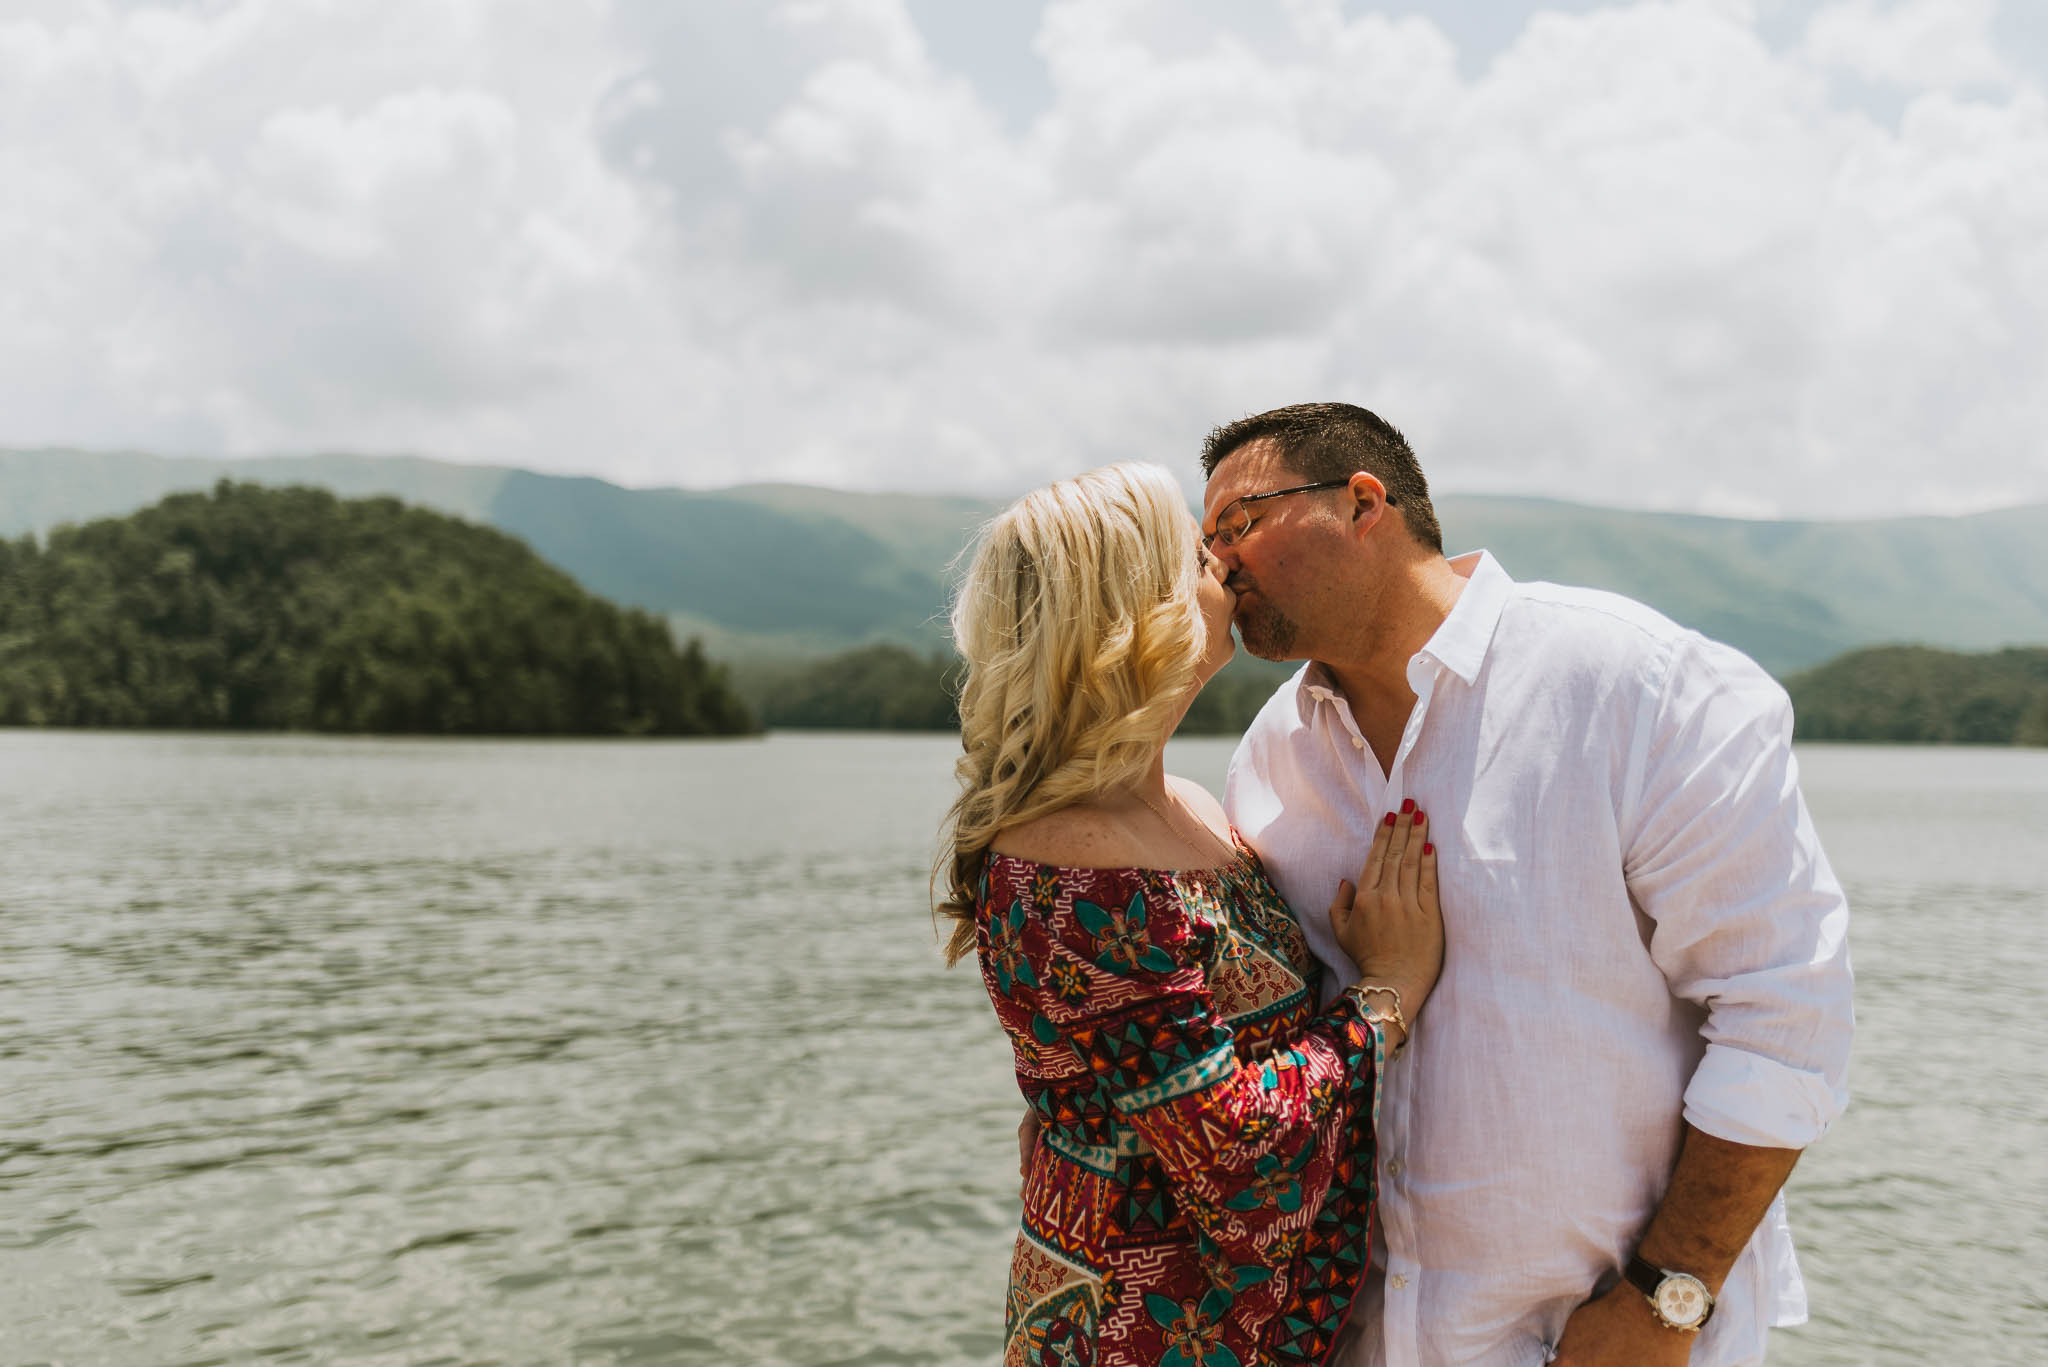 South Holston Lake Engagement Session, Northeast Tennessee Wedding Photographers, East Tennessee Wedding Photographers, Kingsport, TN Wedding Photographers, Knoxville, TN Wedding Photographers (1 of 1).jpg